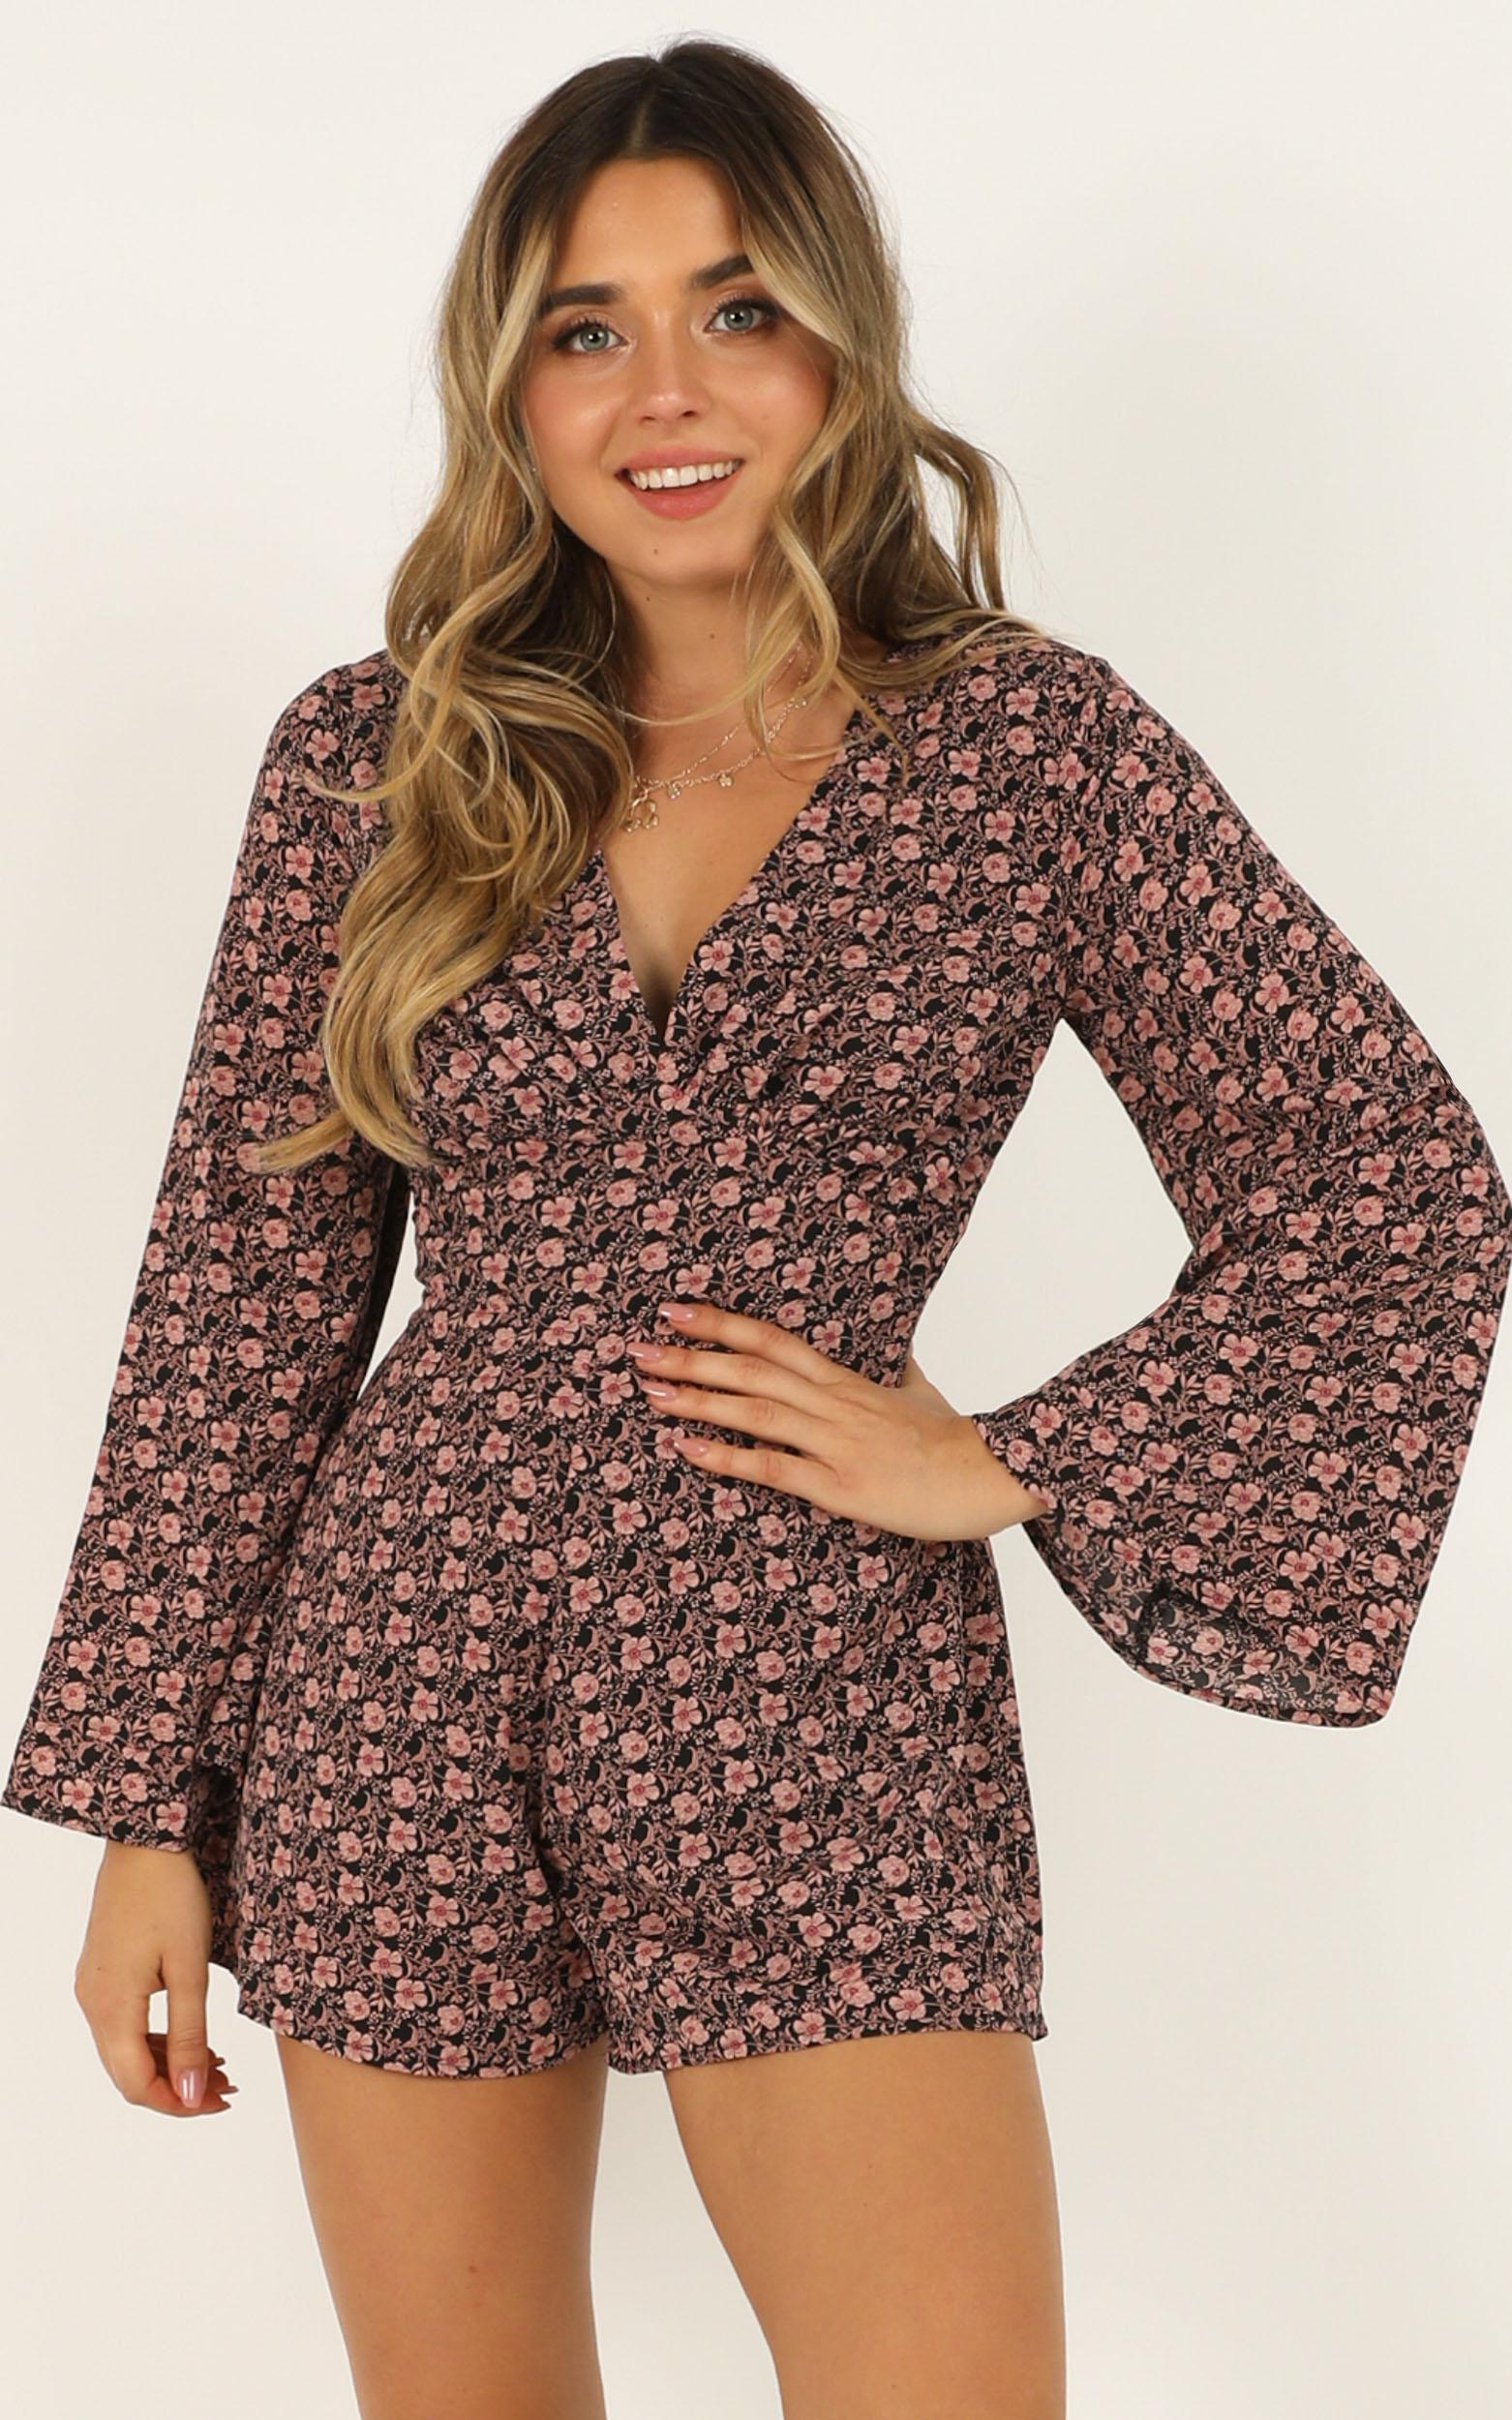 Mystery Lover Playsuit in black floral - 20 (XXXXL), Black, hi-res image number null